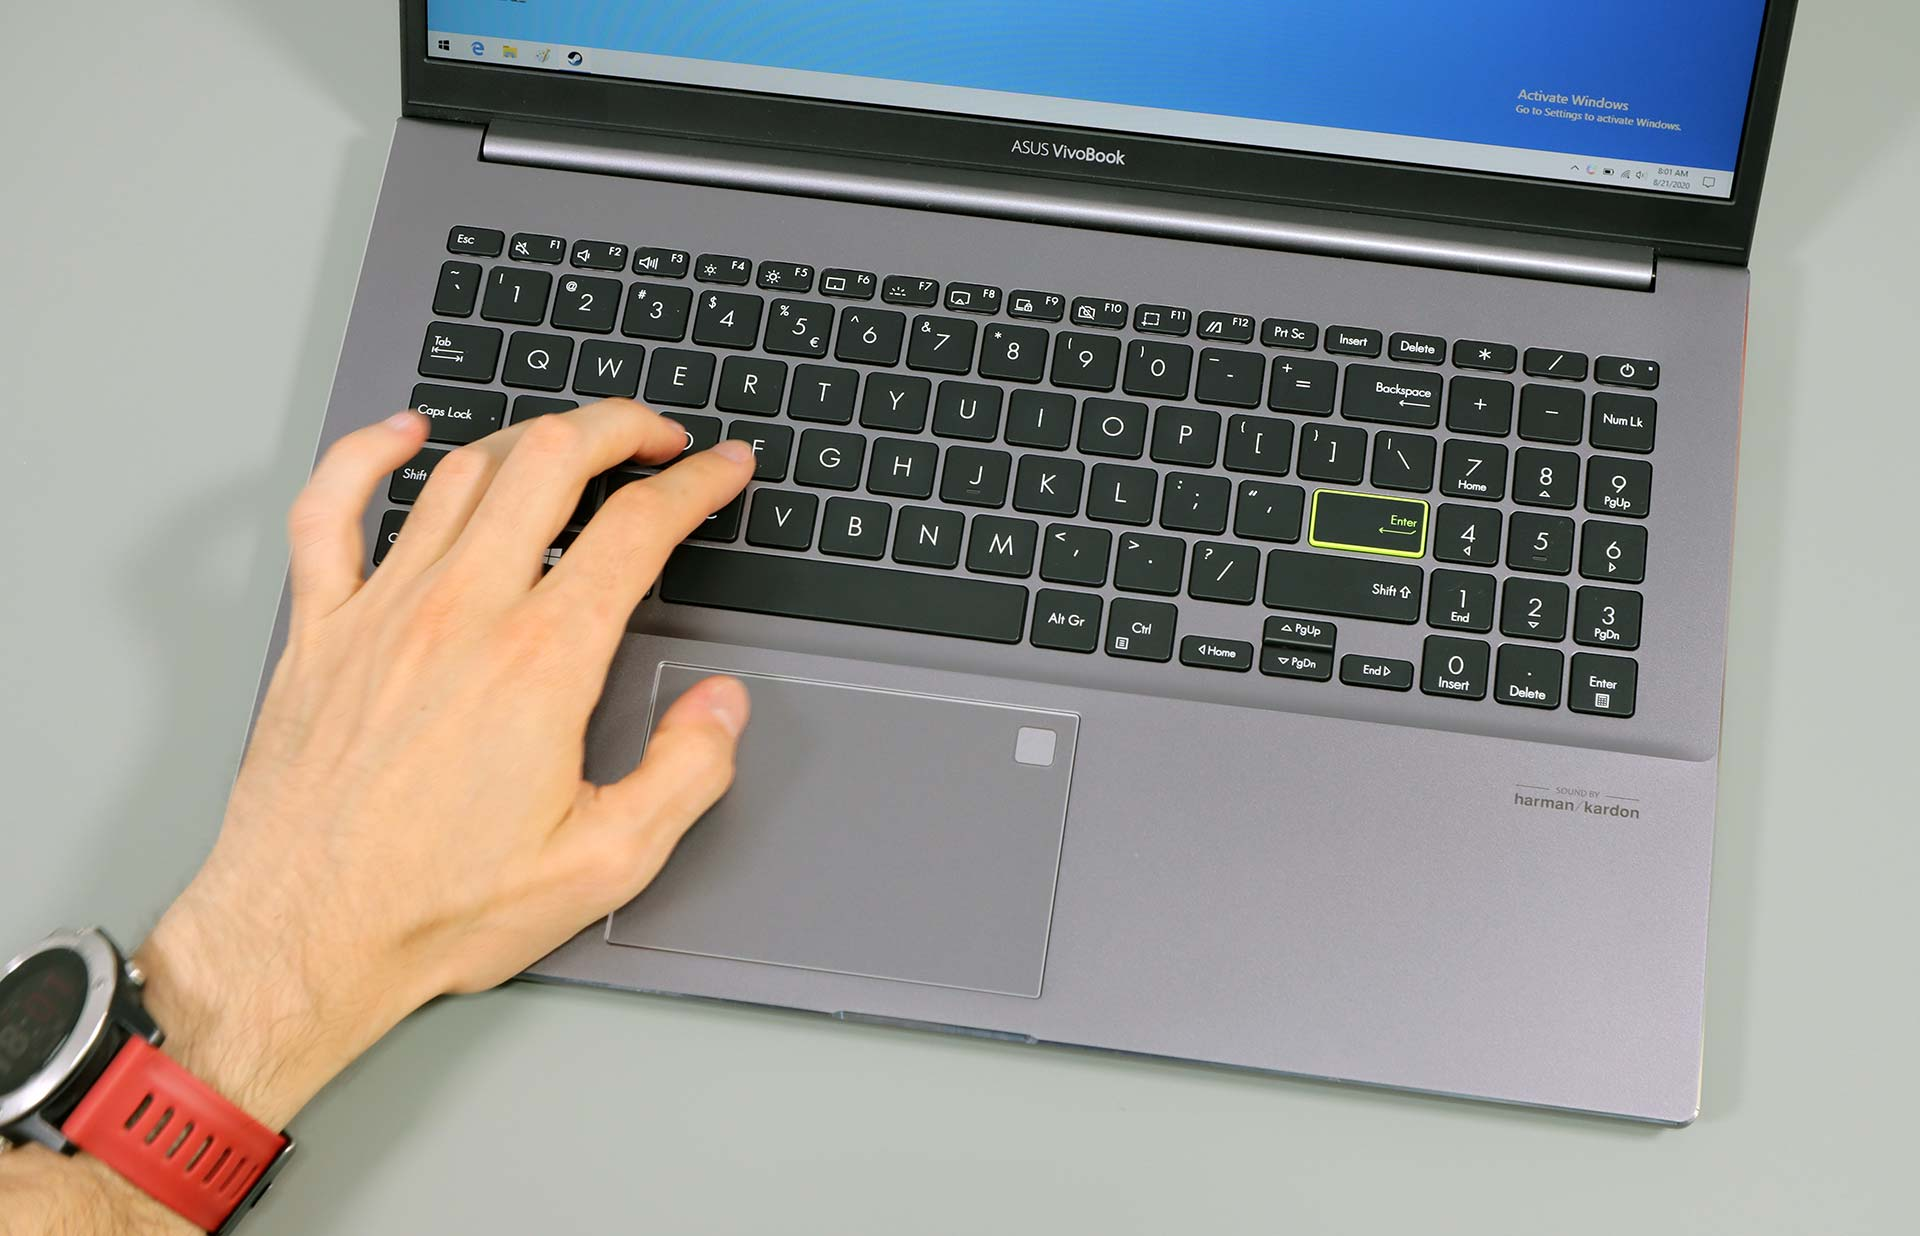 Asus VivoBook S15 M533IA - keyboard and clickpad